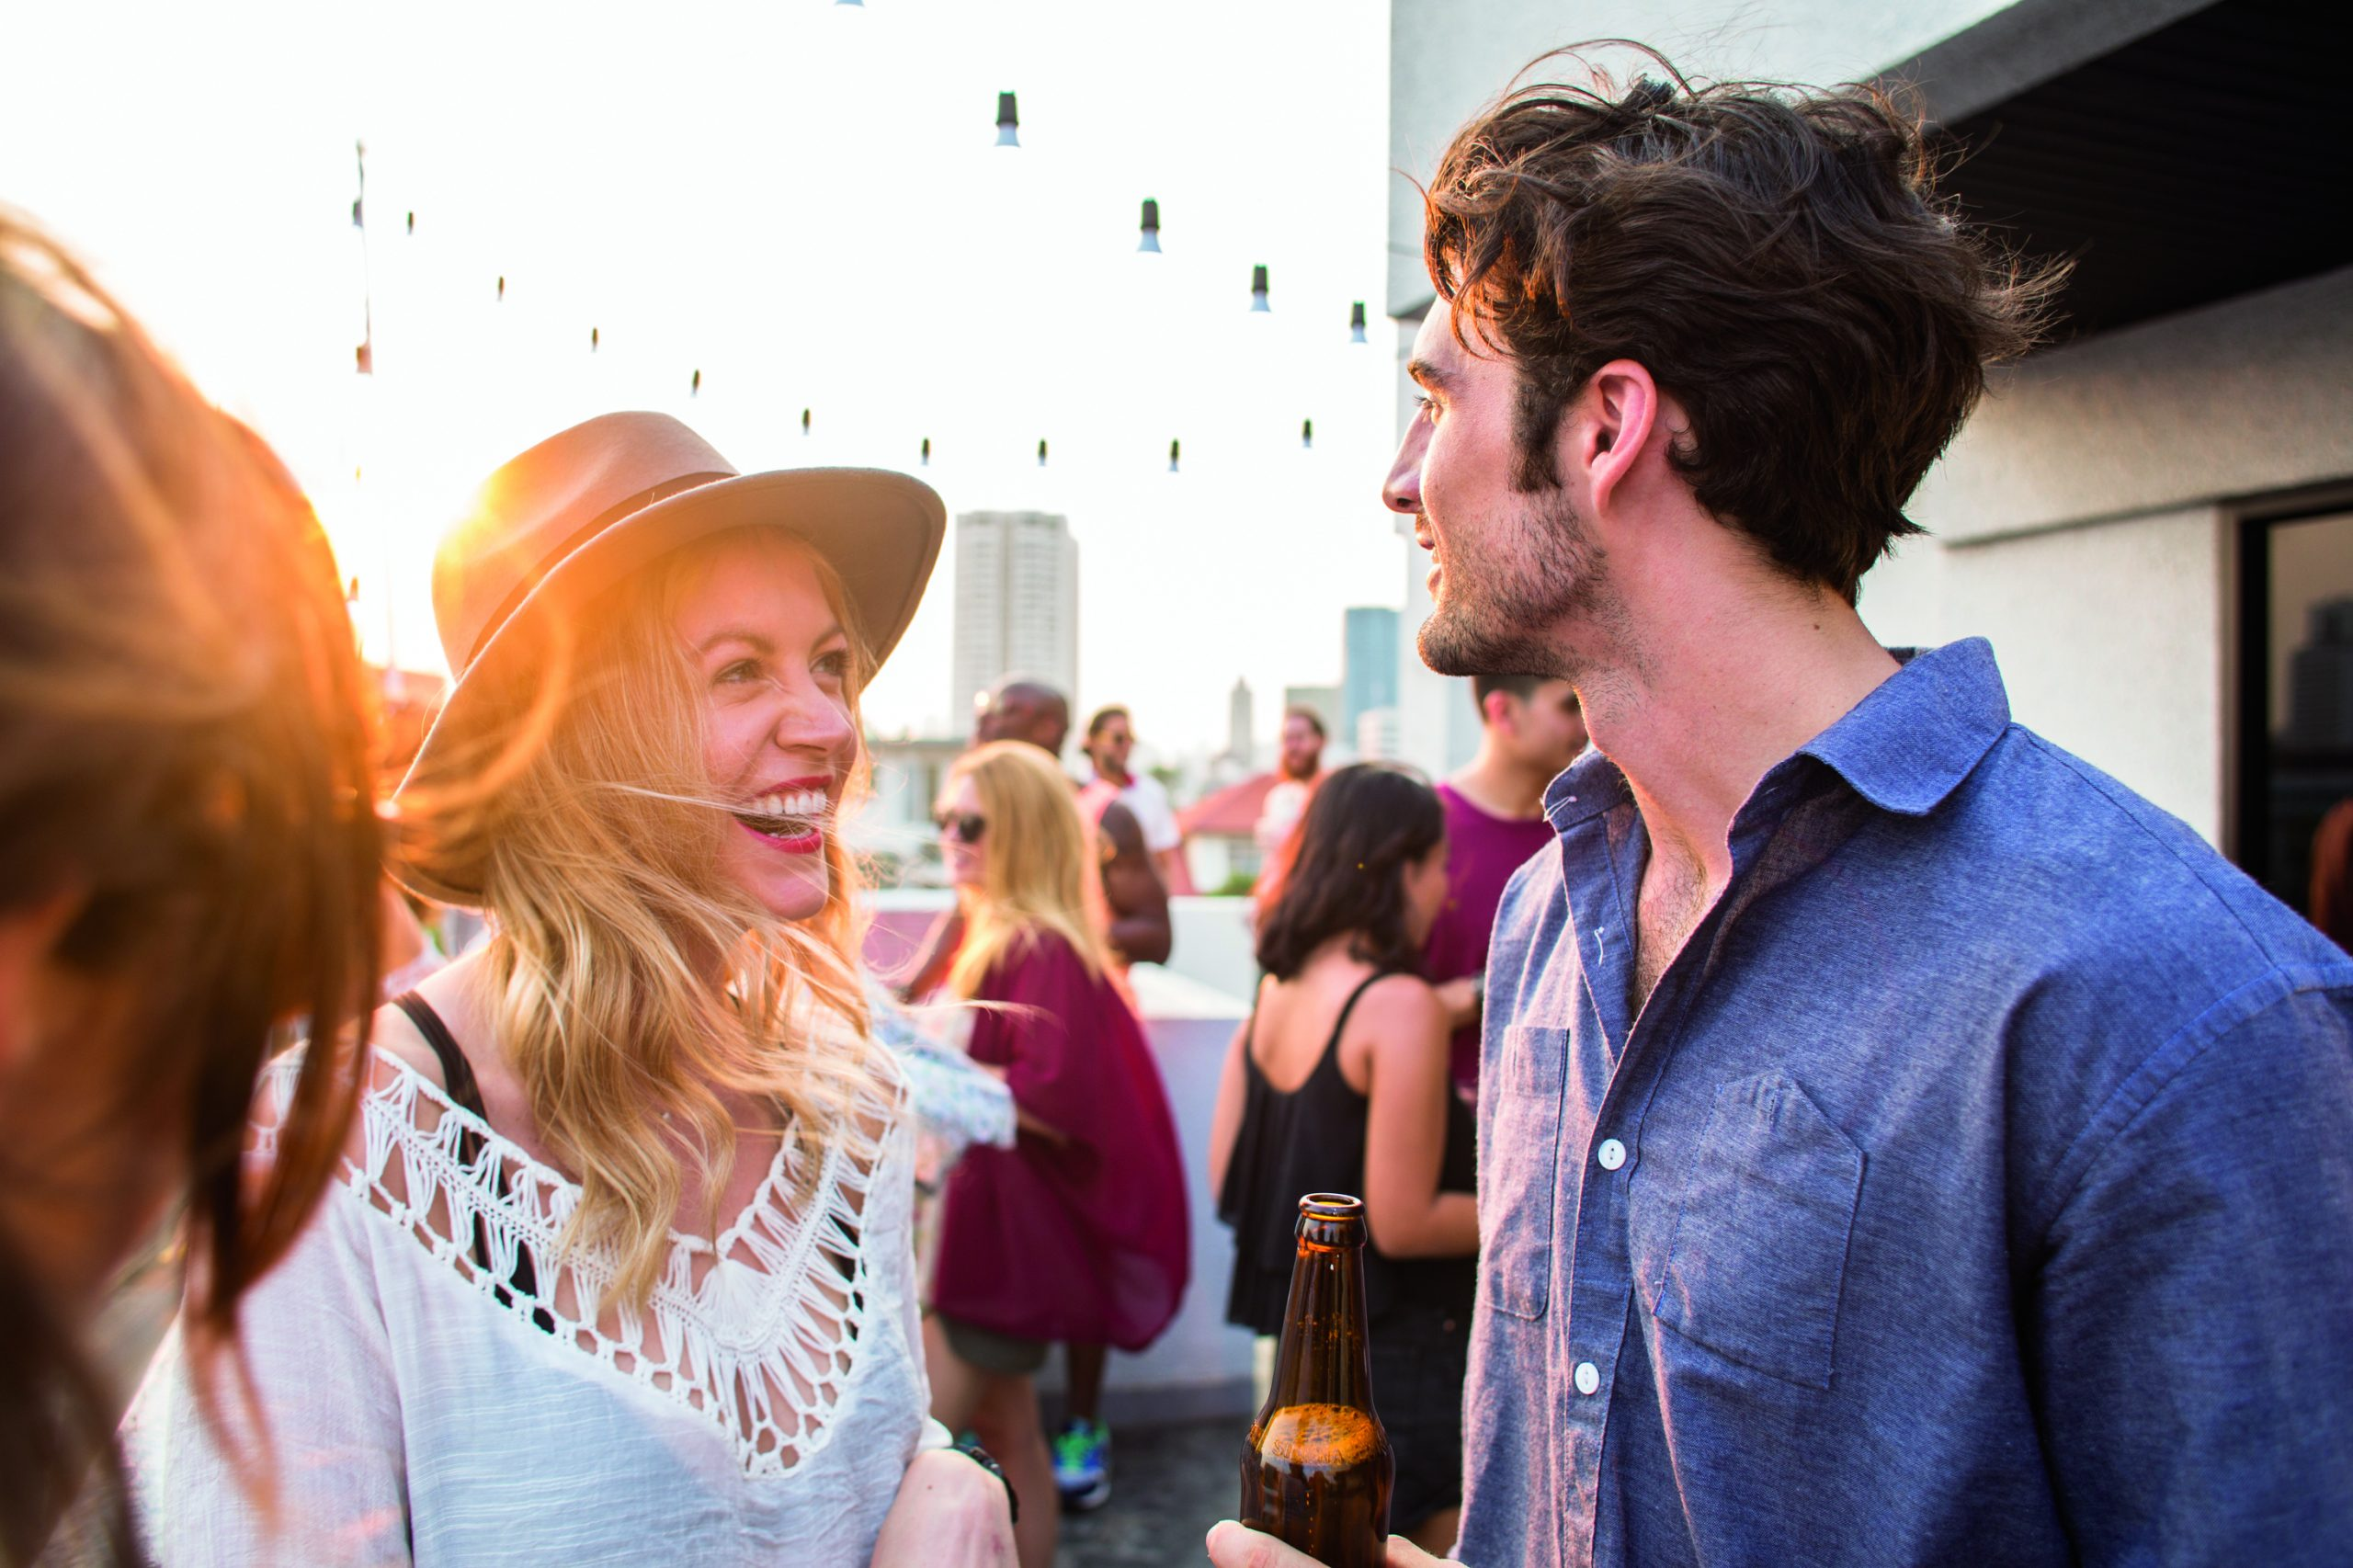 A man and a woman attend an outdoor party during sunset.